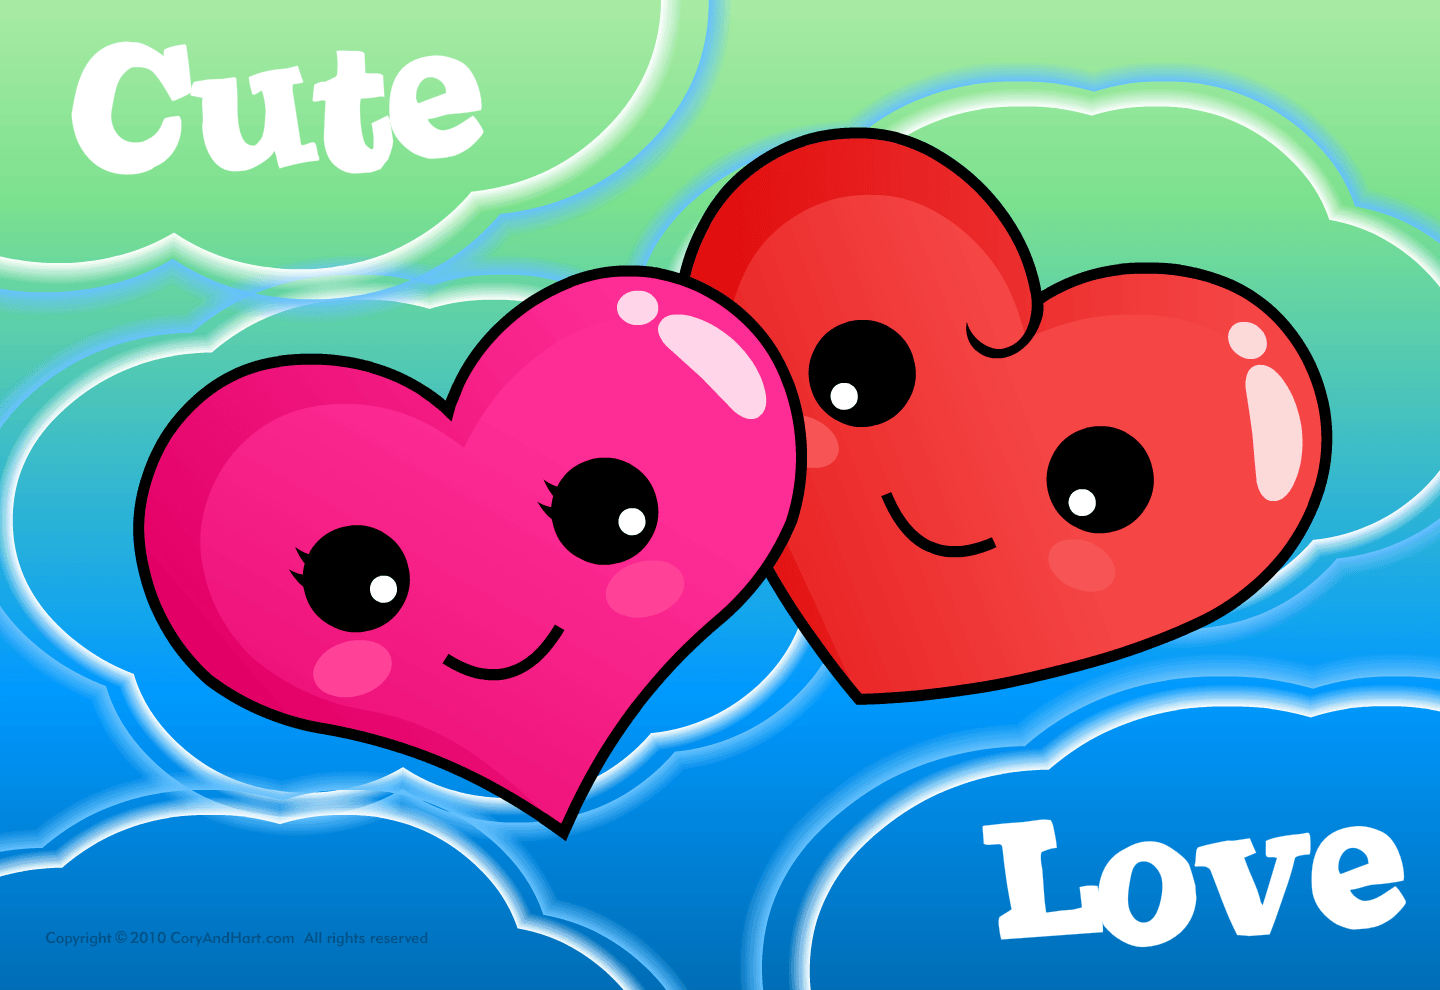 cute Love Wallpaper In 3d : Love cute Wallpapers - Wallpaper cave